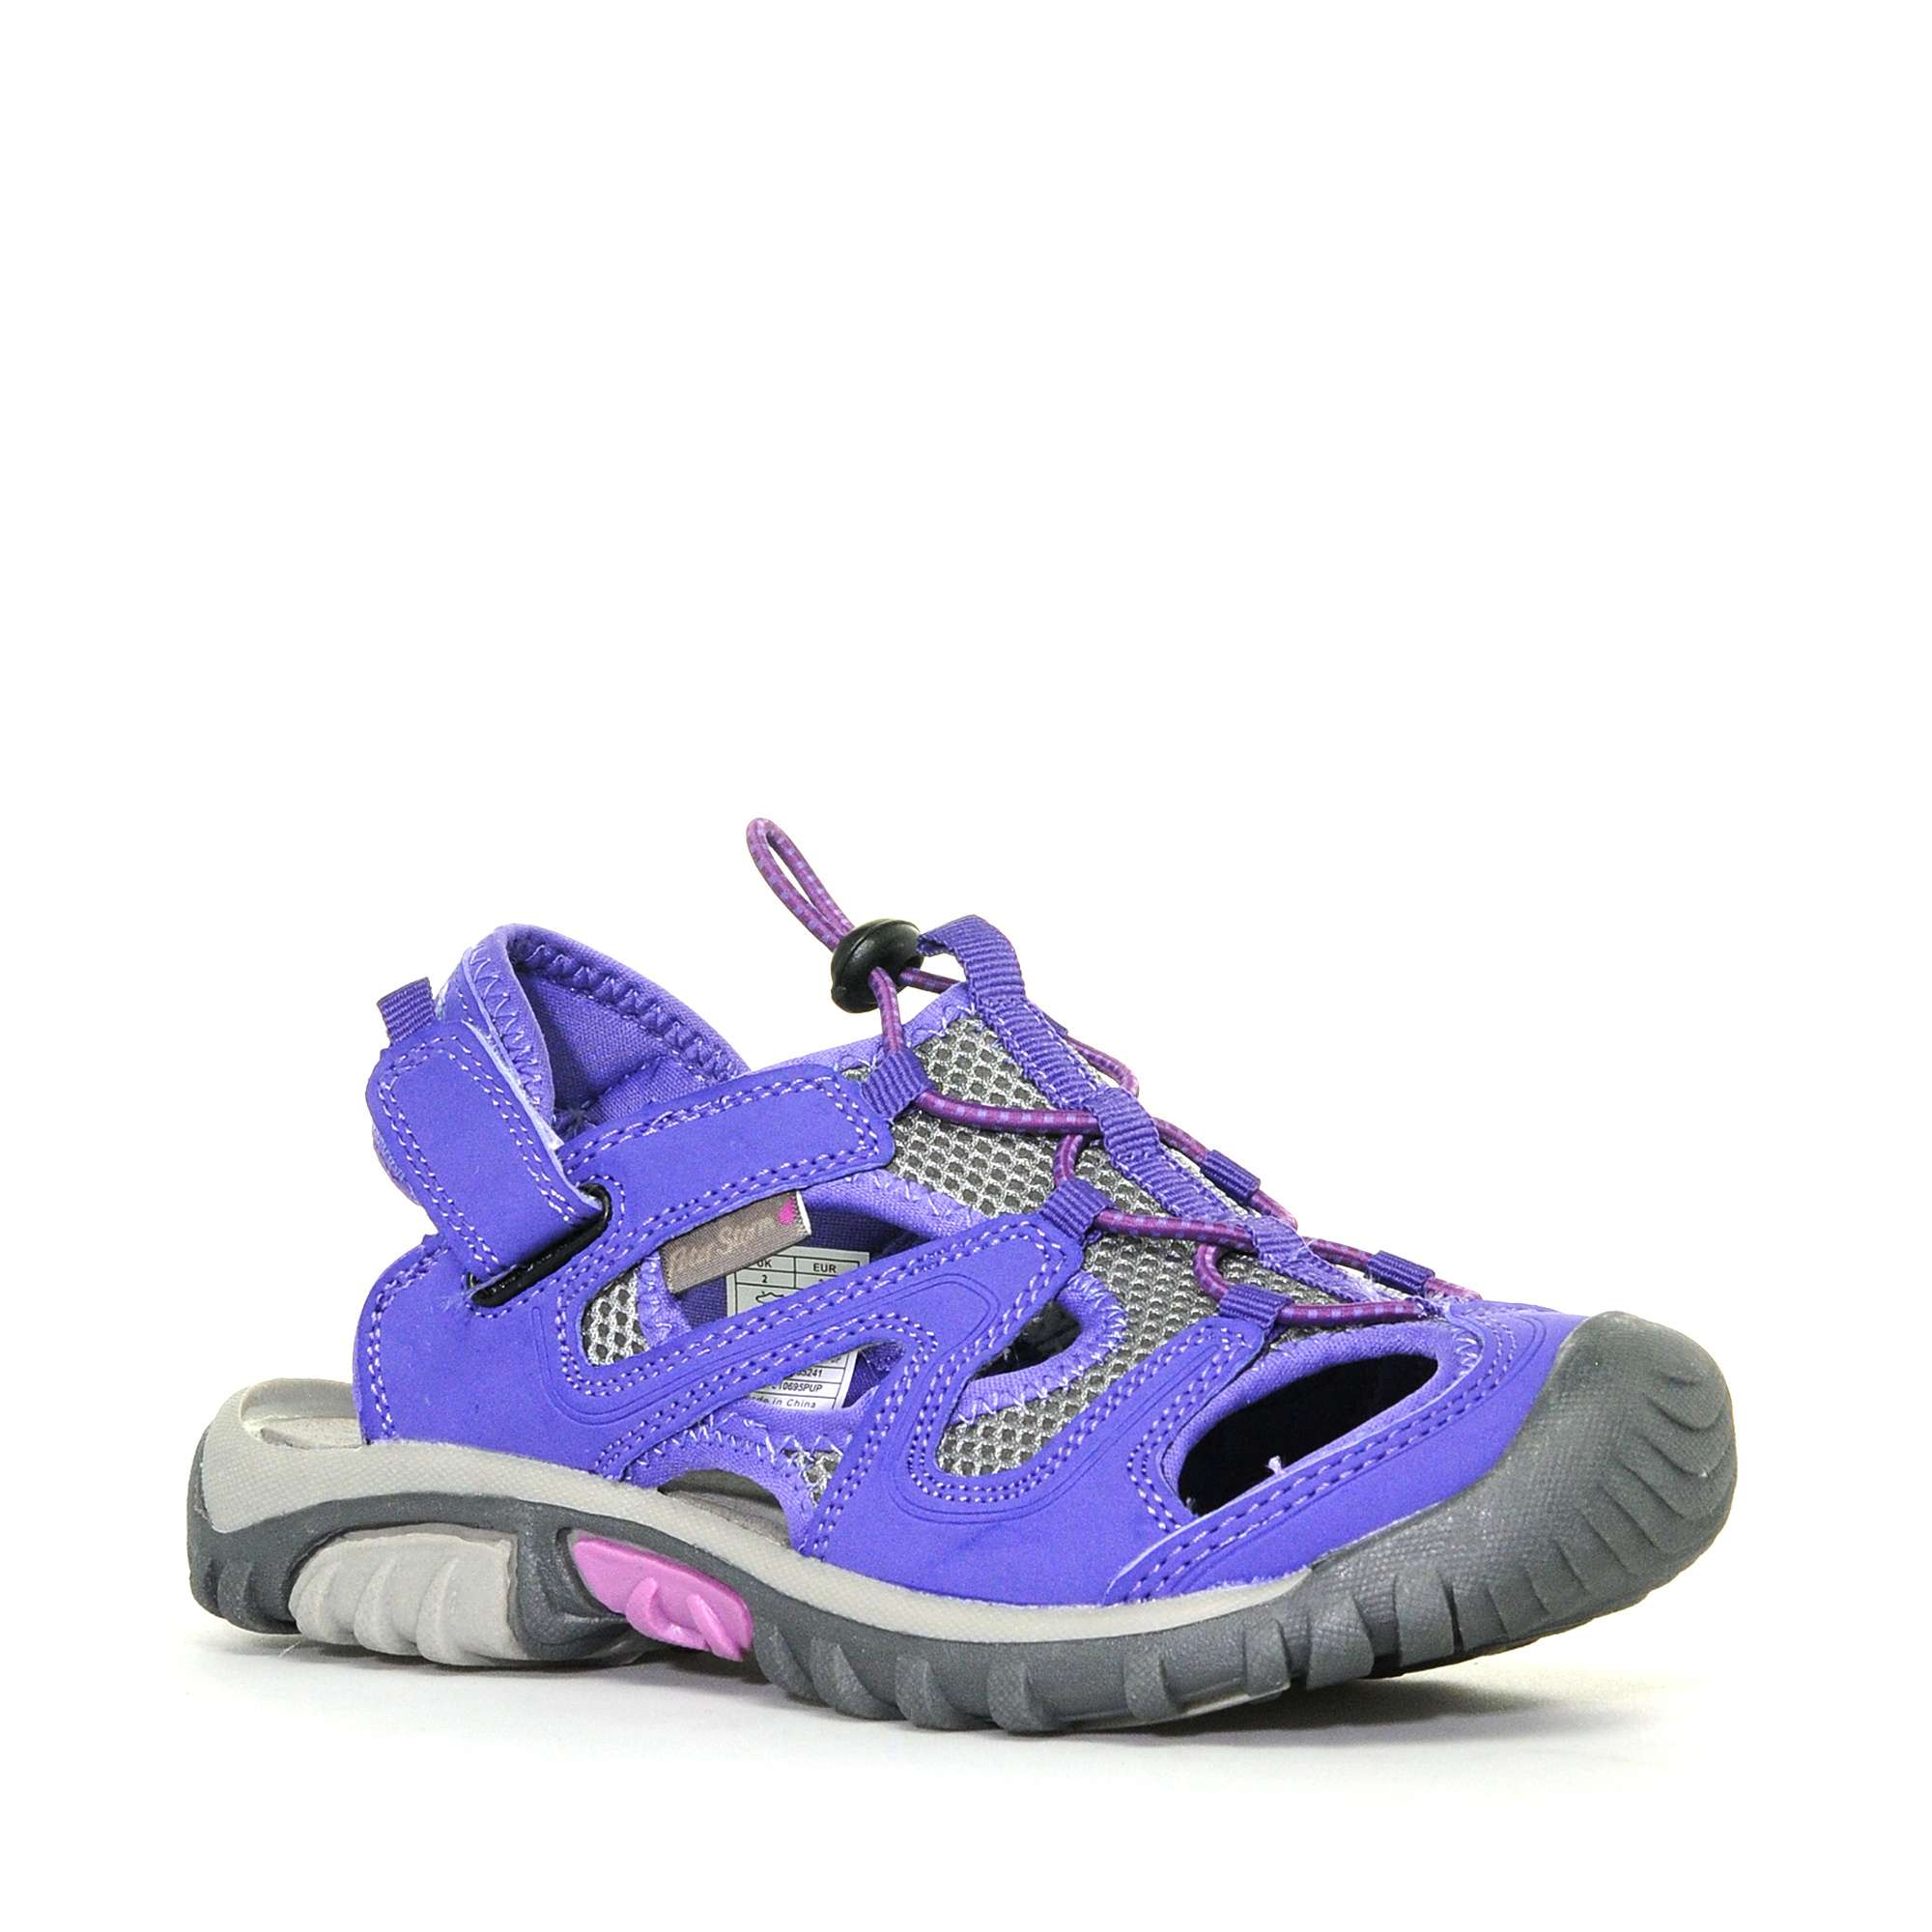 PETER STORM Girls' Sennen Sandal